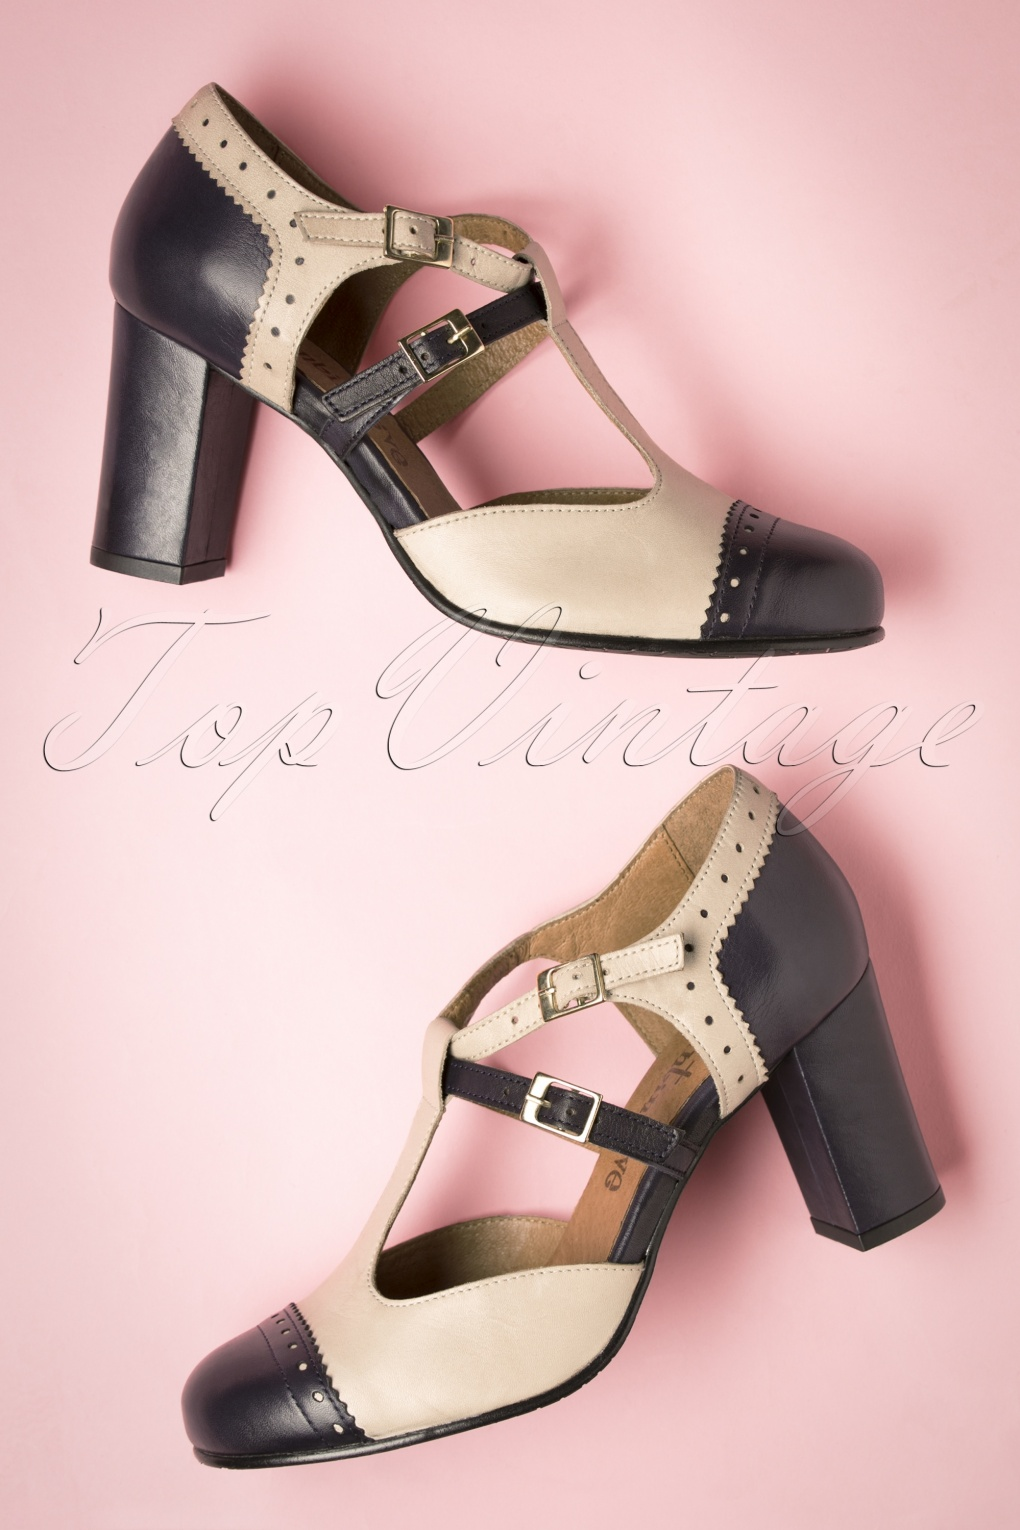 Vintage Style Shoes, Vintage Inspired Shoes 60s Elena Leather T-Strap Pumps in Beige and Blue £134.98 AT vintagedancer.com